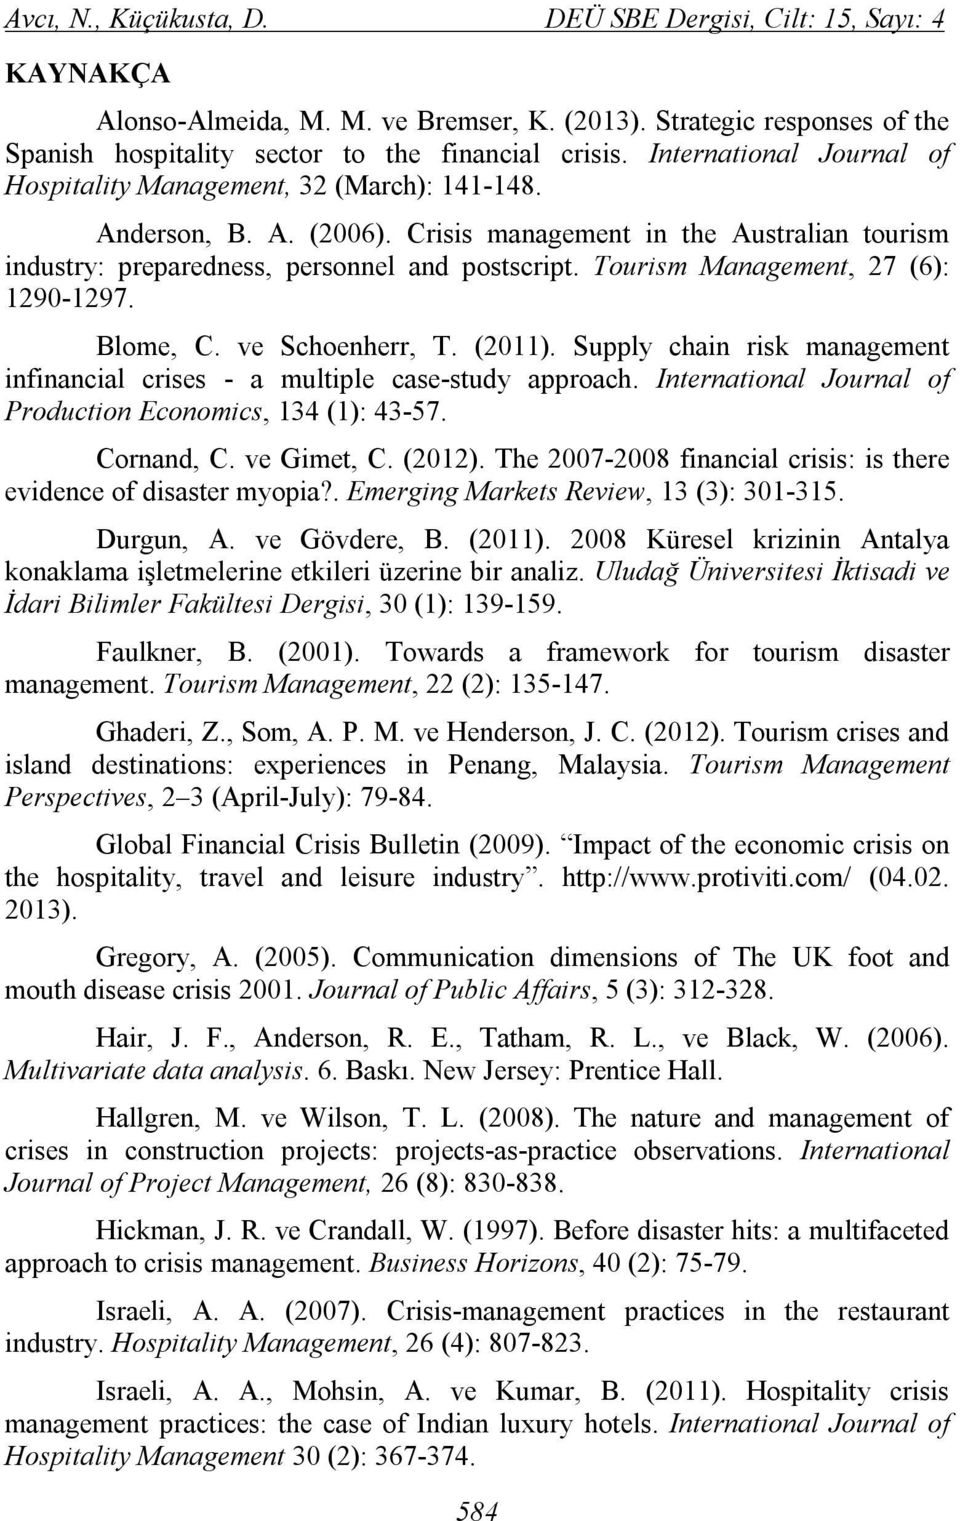 Tourism Management, 27 (6): 1290-1297. Blome, C. ve Schoenherr, T. (2011). Supply chain risk management infinancial crises - a multiple case-study approach.